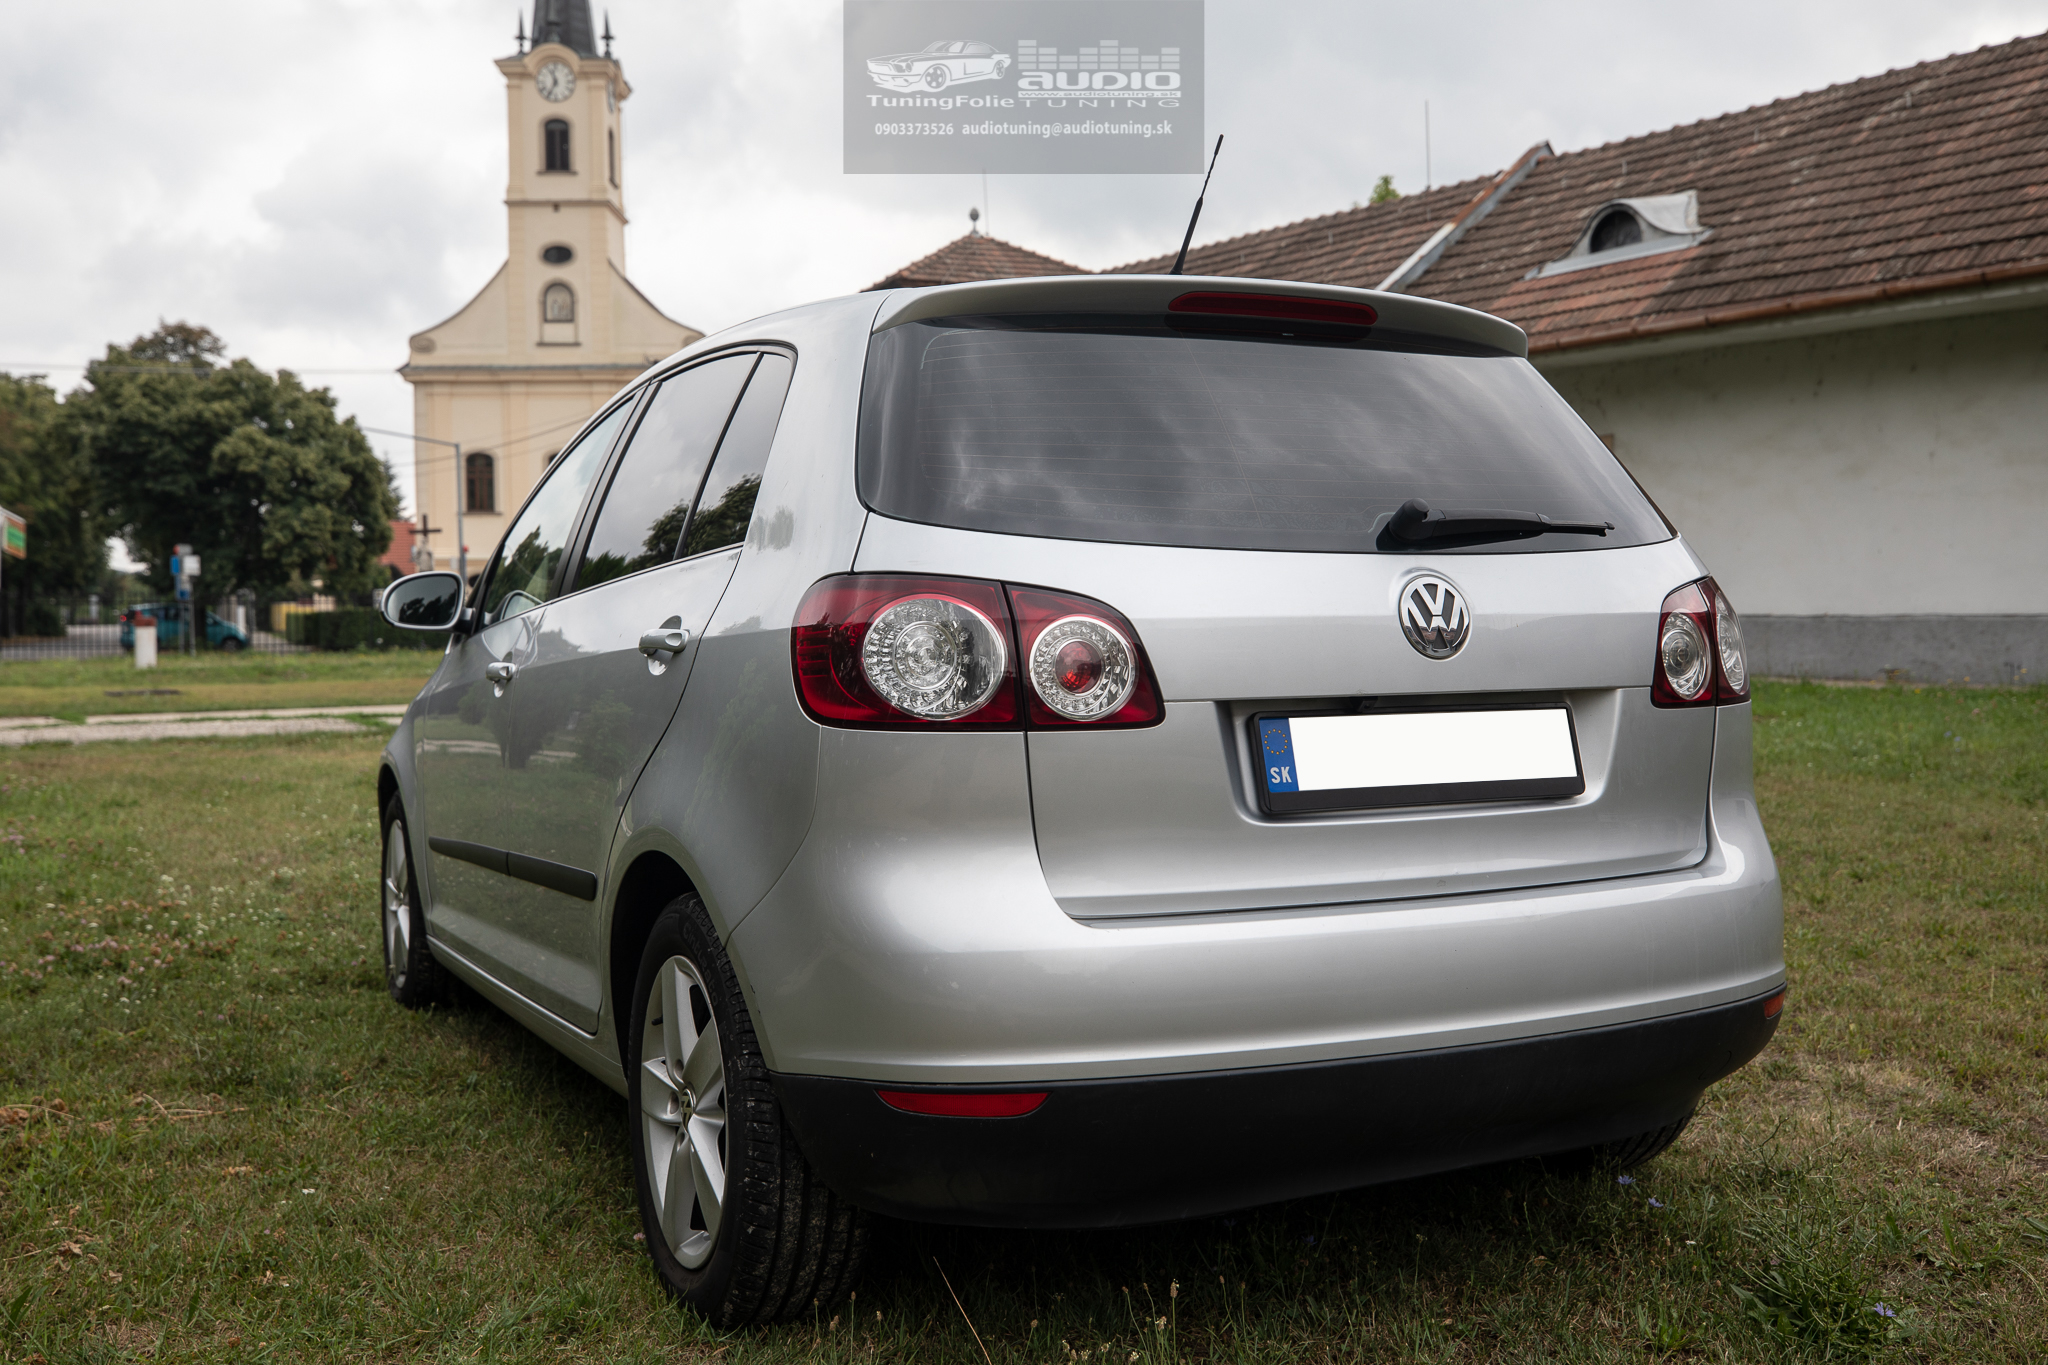 AUTOFOLIE PREMIUM SUNTEK HP 05 VW GOLF 5 PLUS-3056